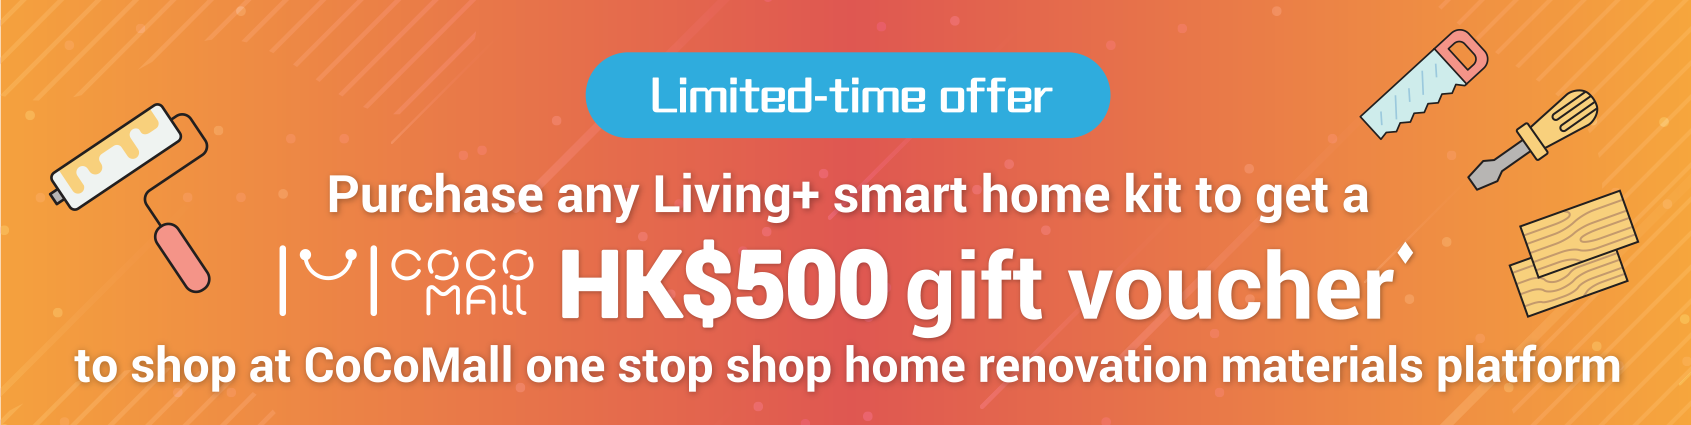 Limited-time offer Purchase any Living+ smart home kit to get a COCO MALL HK$500 gift voucher to shop at CoCoMall one stop shop home renovation materials platform